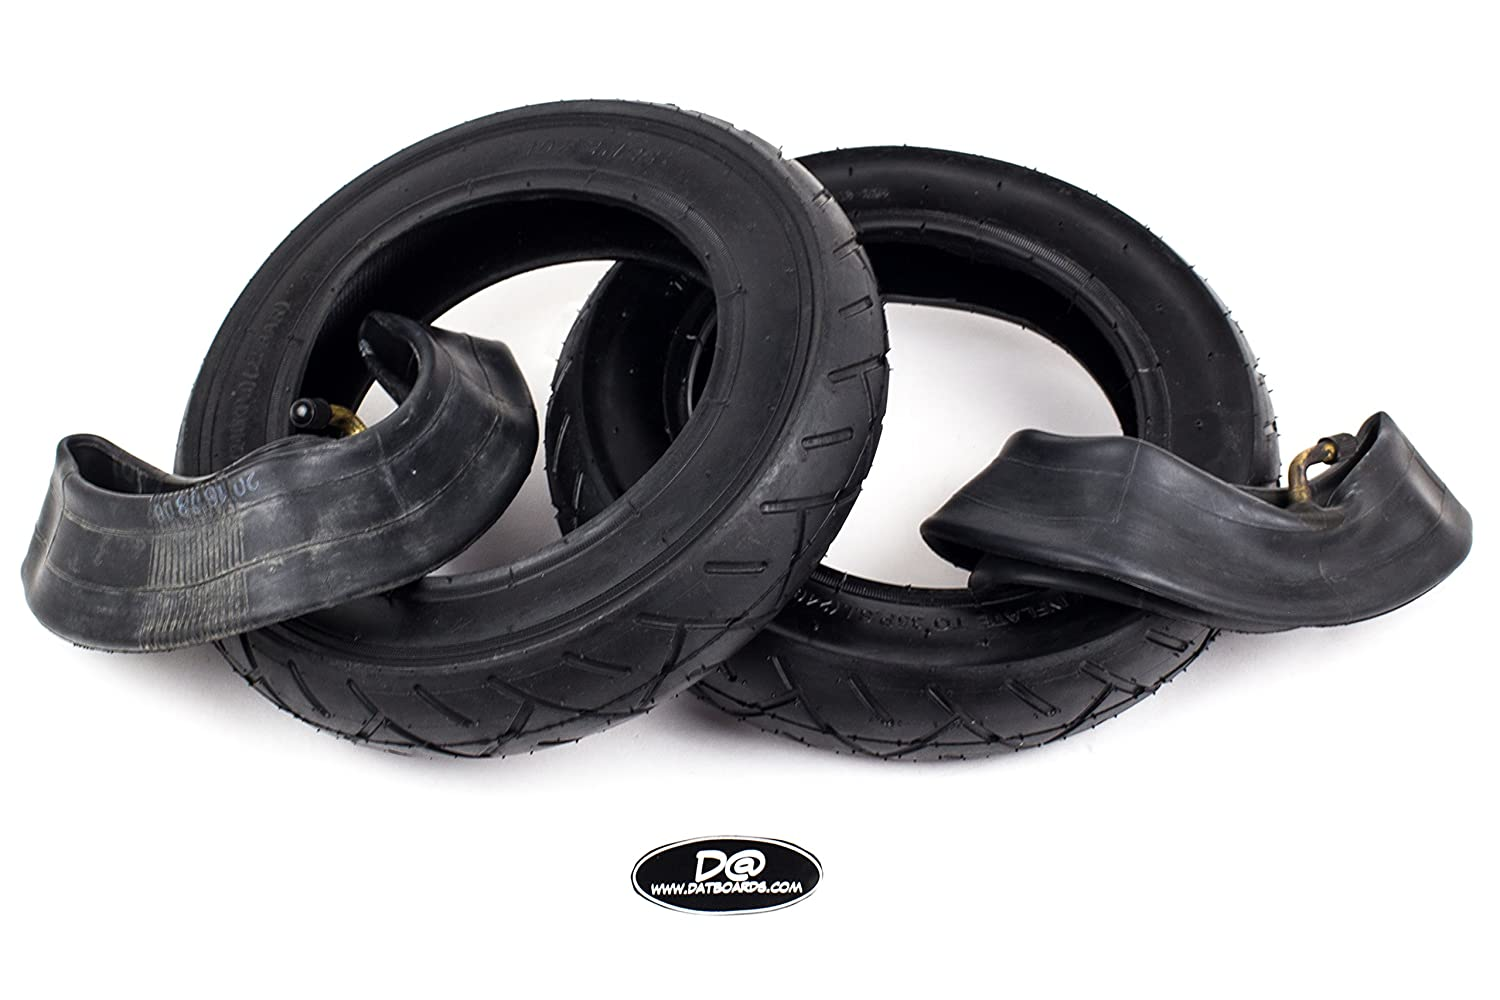 10x2.125in set of 2 Rubber tires and innertubes for self balance scooter hoverboards D@Boards